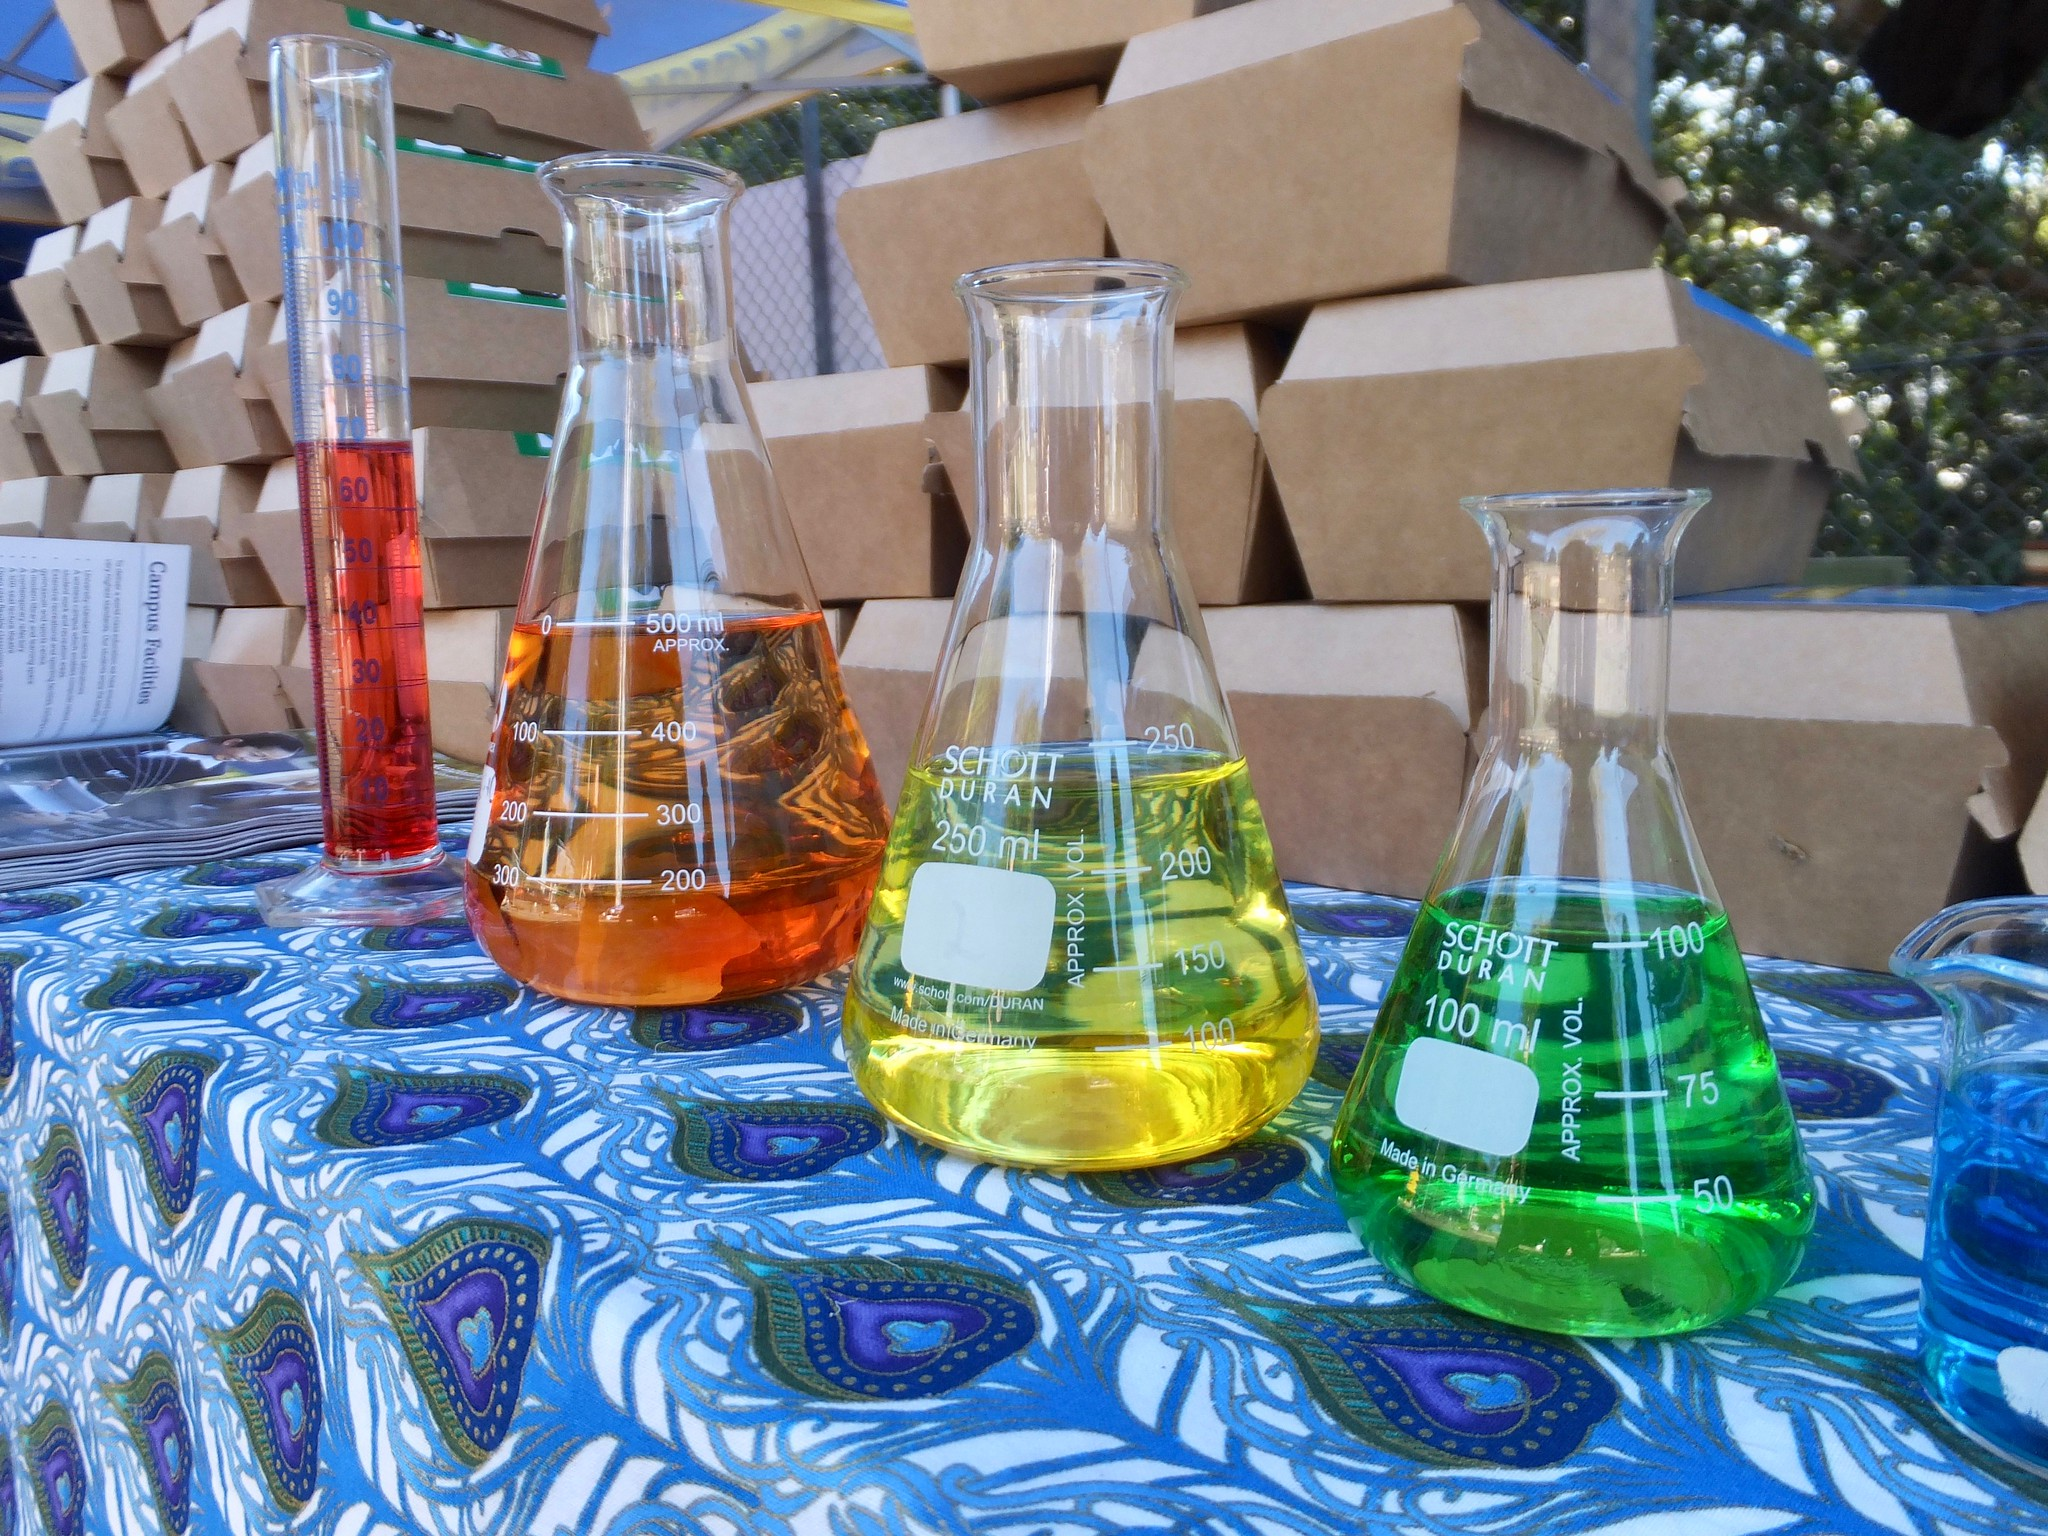 Different chemistry beakers full of chemicals in the colors of the rainbow